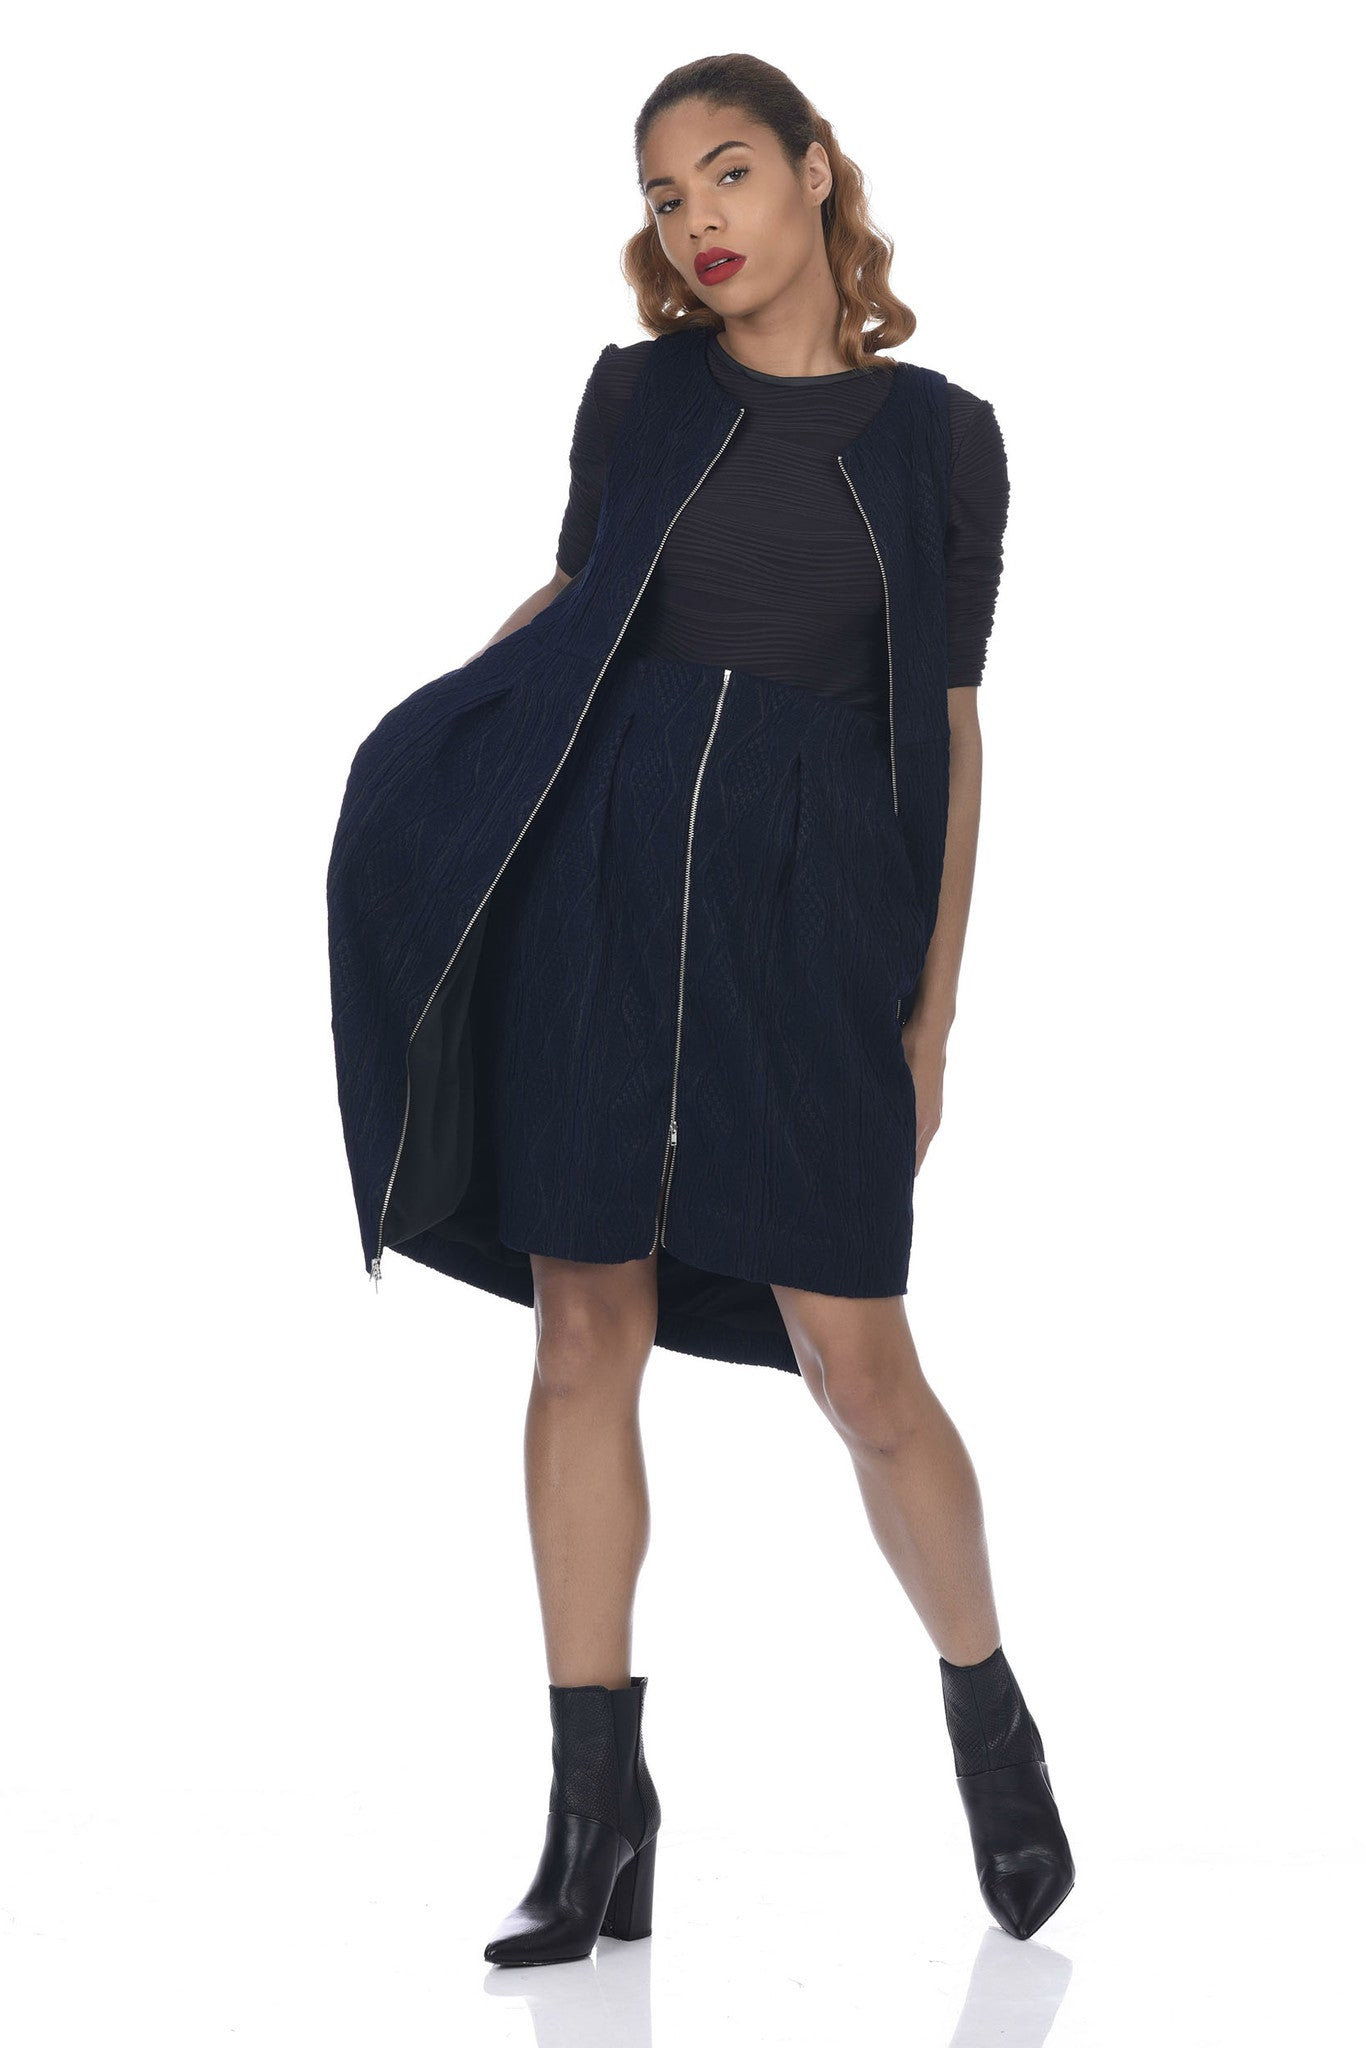 Navy 2-Way Zipper Tulip-Skirt Cable Knit Dress